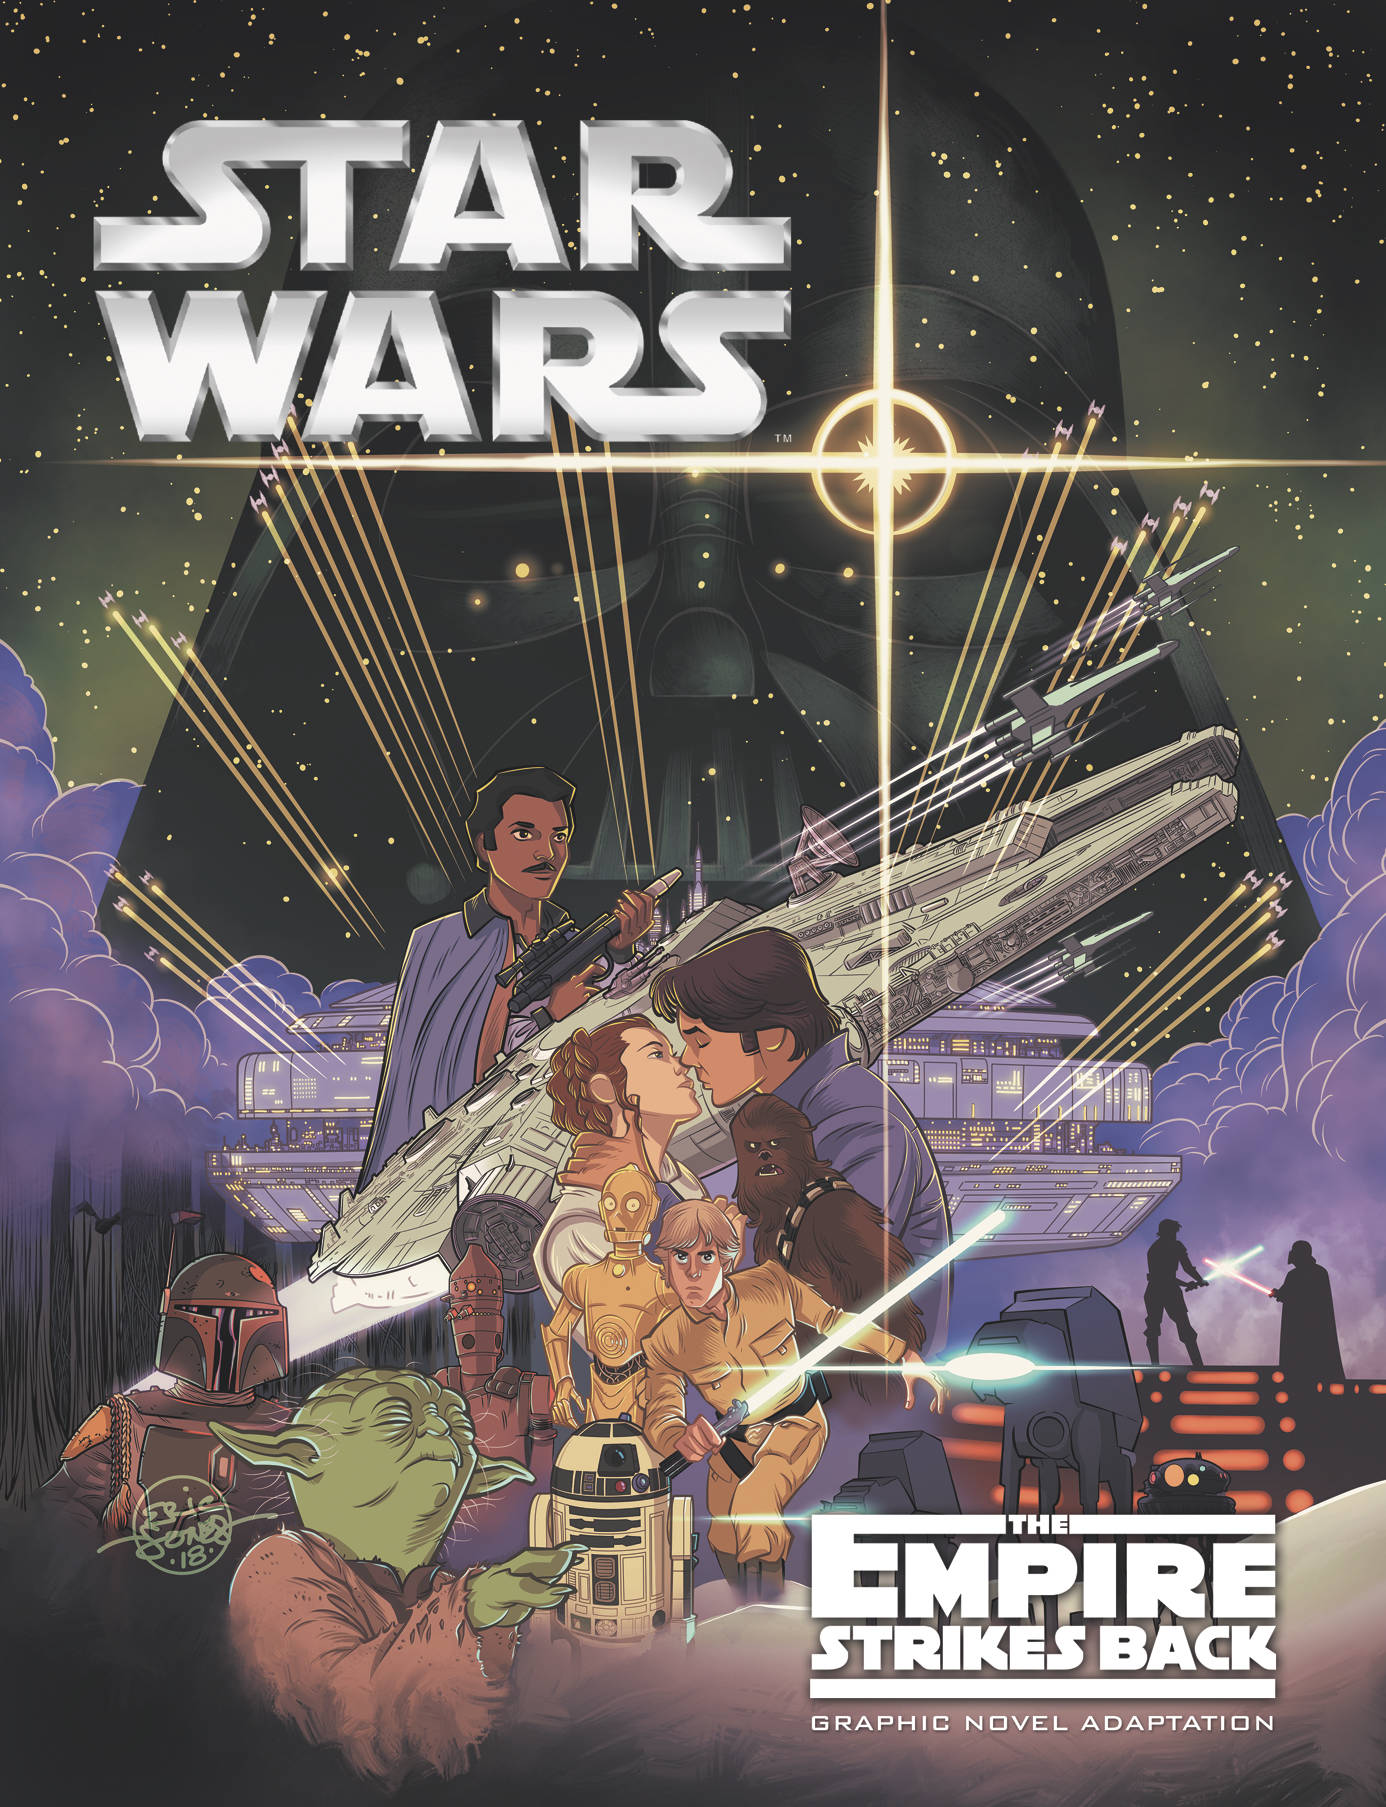 STAR WARS EMPIRE STRIKES BACK GN.jpg